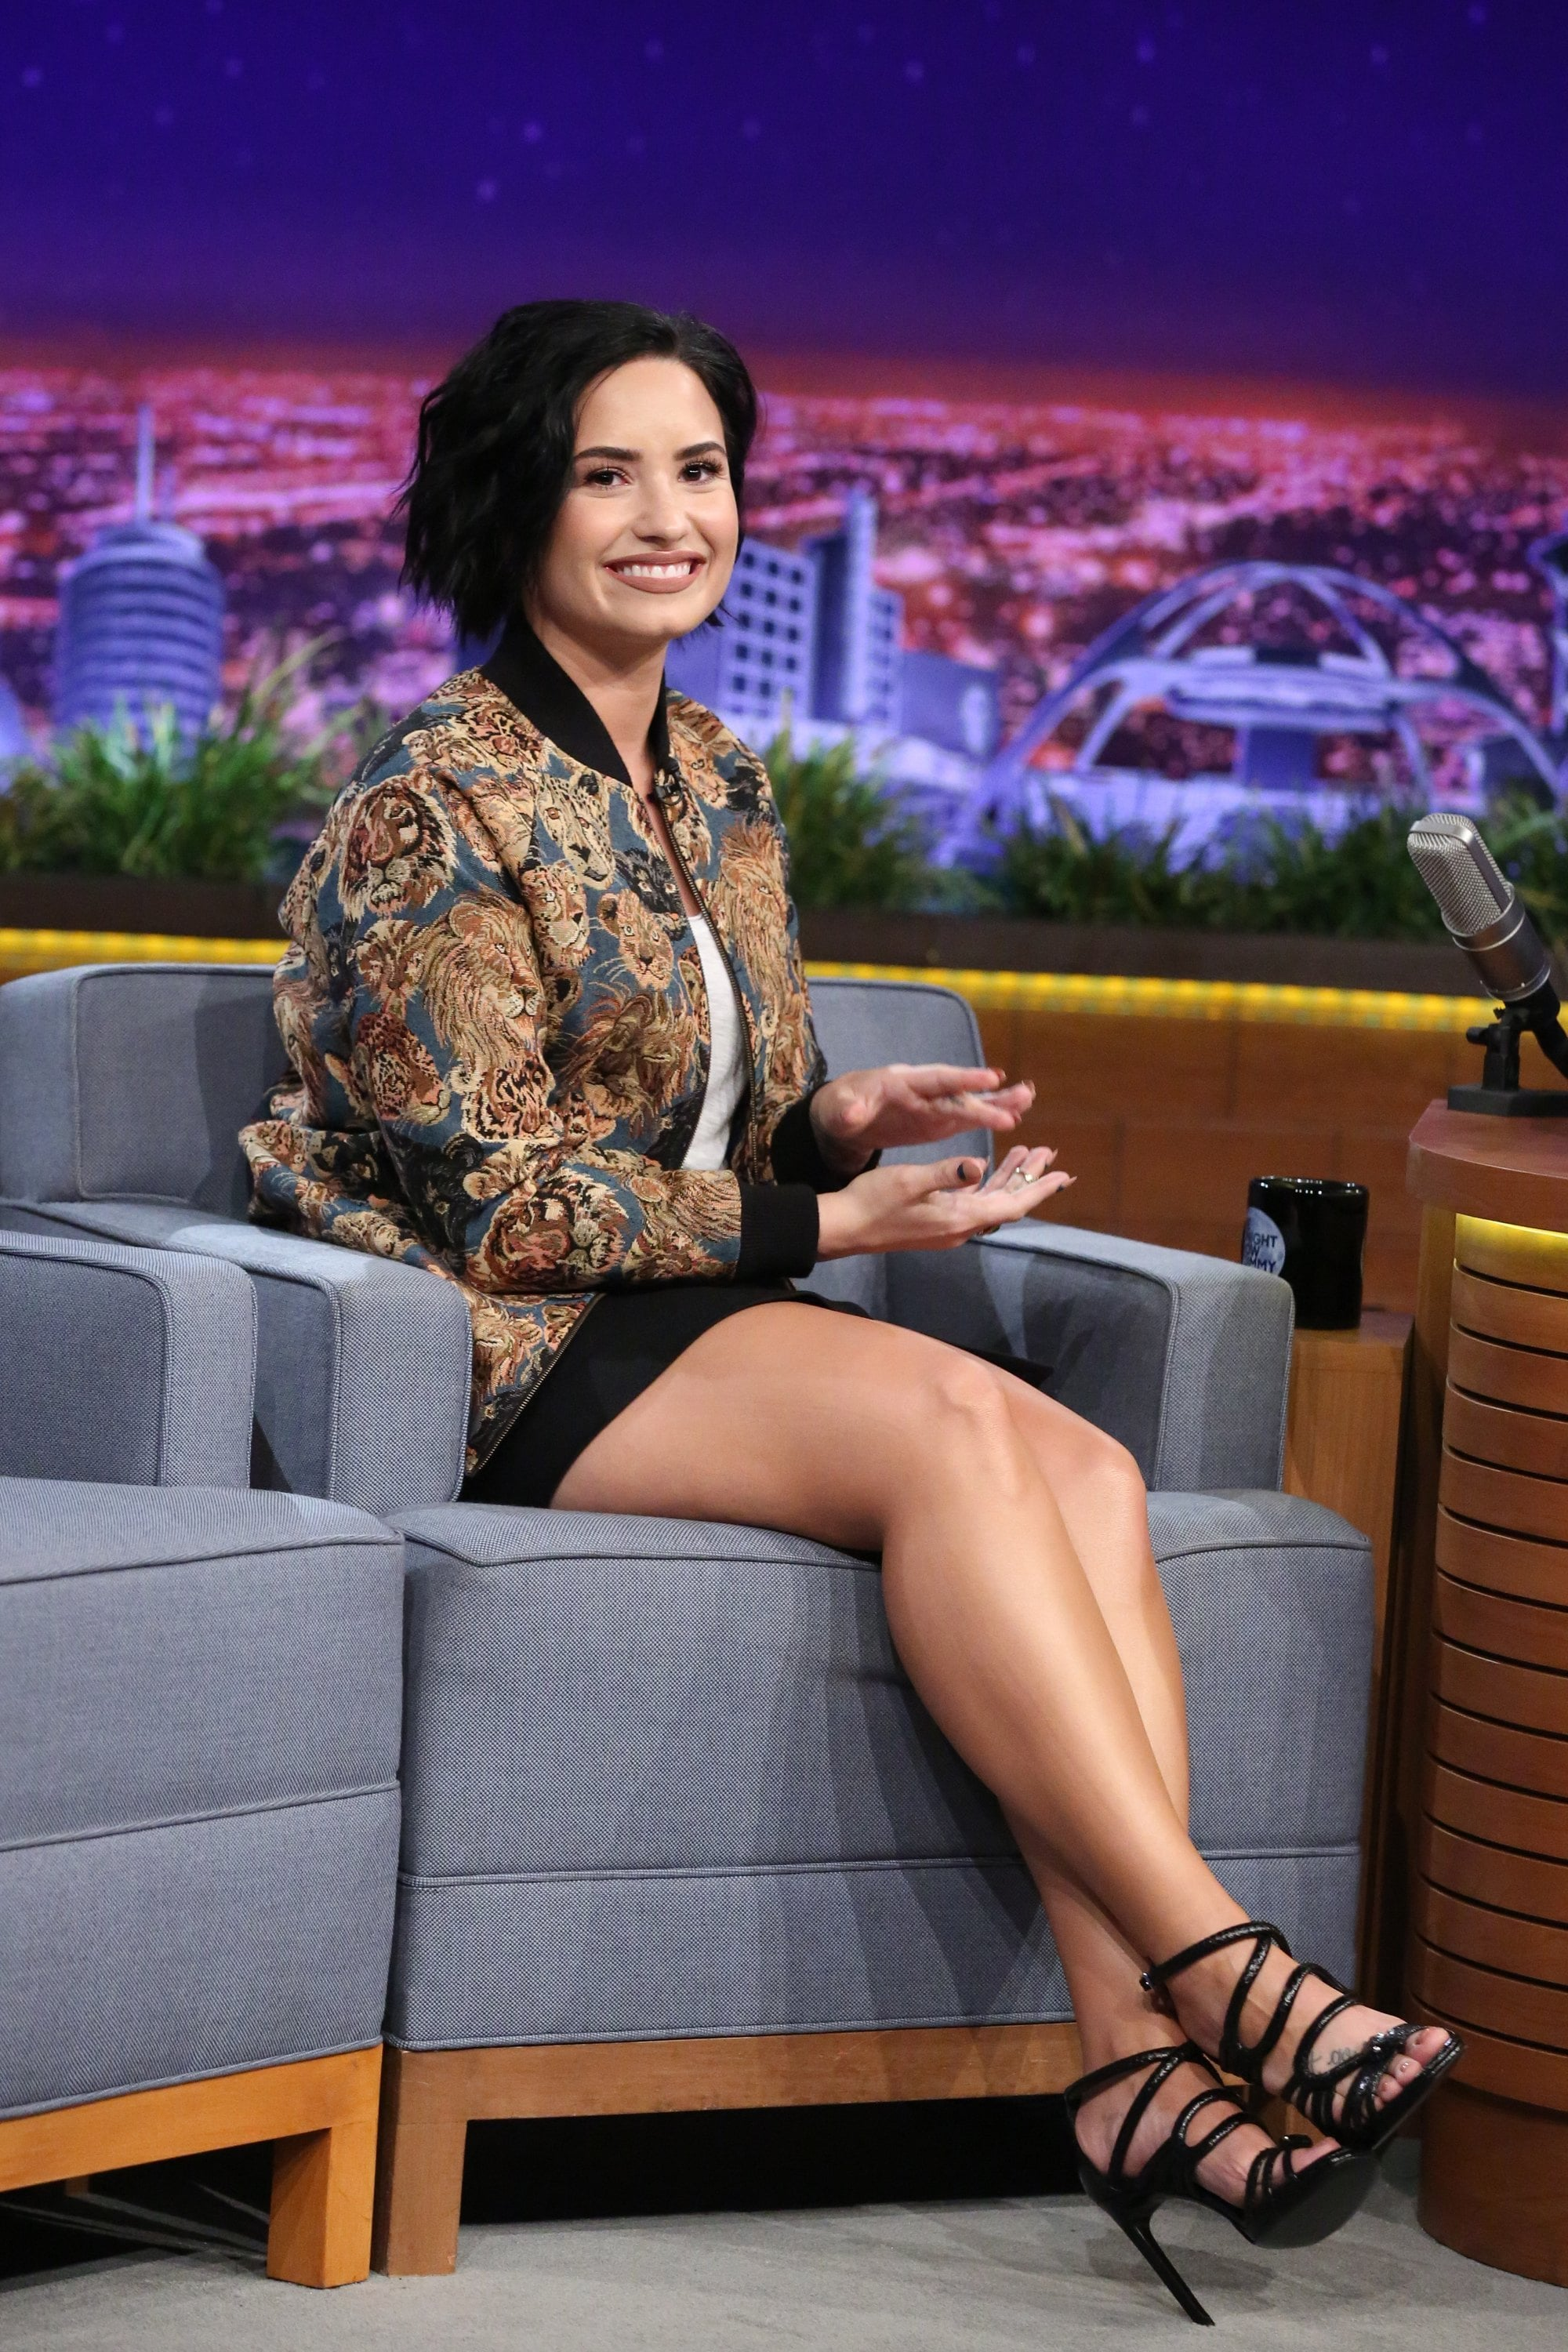 Demi Lovato Sexy Feet in high heels